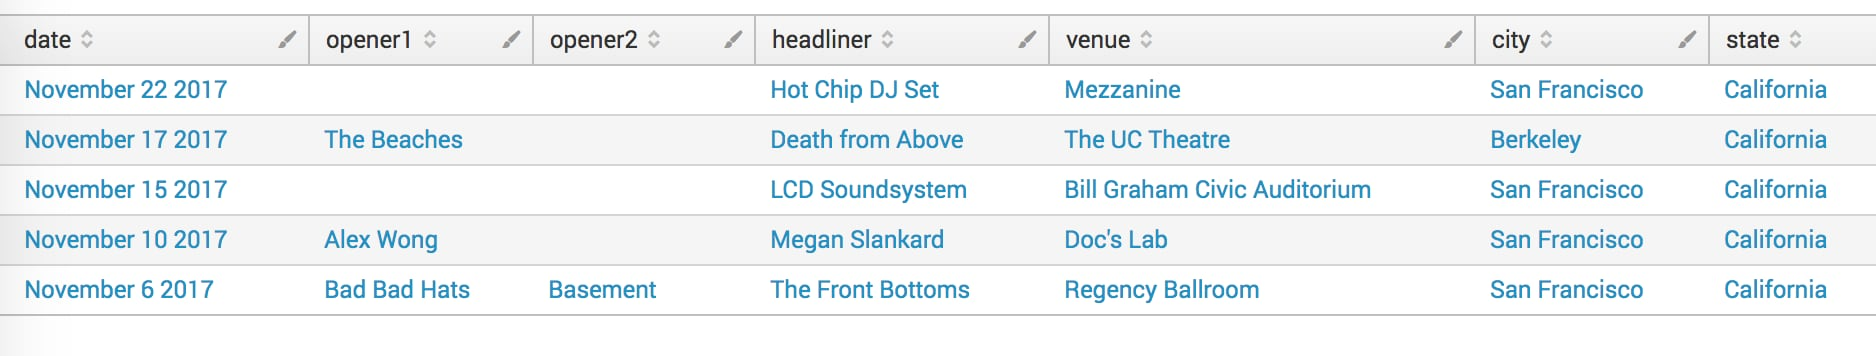 This screen capture shows a table of the five concerts I attended in November. A Hot Chip DJ set, a Death from Above show, LCD Soundsystem, Megan Slankard, and The Front Bottoms were the headliners.